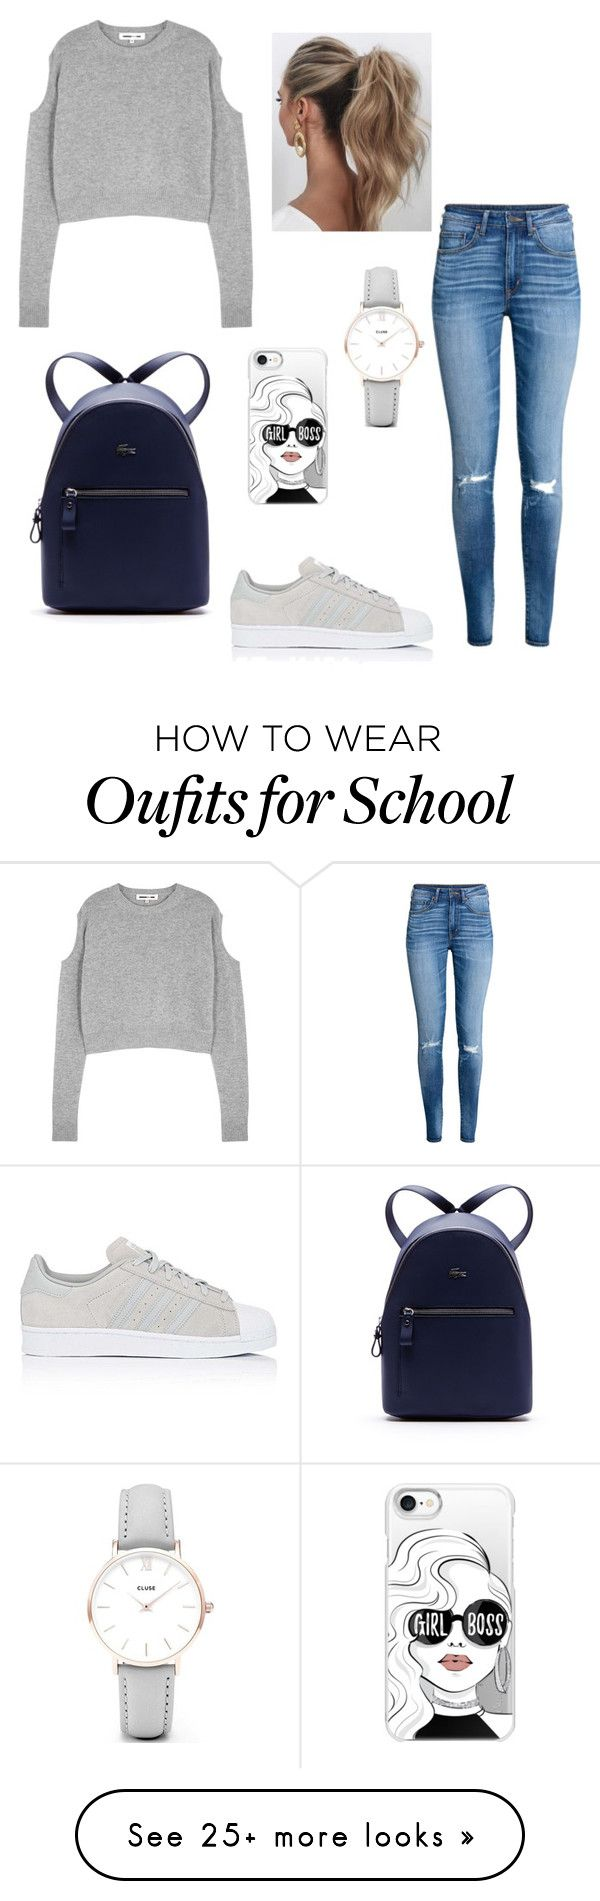 """""""SCHOOL look"""" by glady-dea on Polyvore featuring Love Couture, McQ by Alexander McQueen, H&M, adidas, Lacoste, CLUSE, Casetify, BackToSchool, outfit and school"""